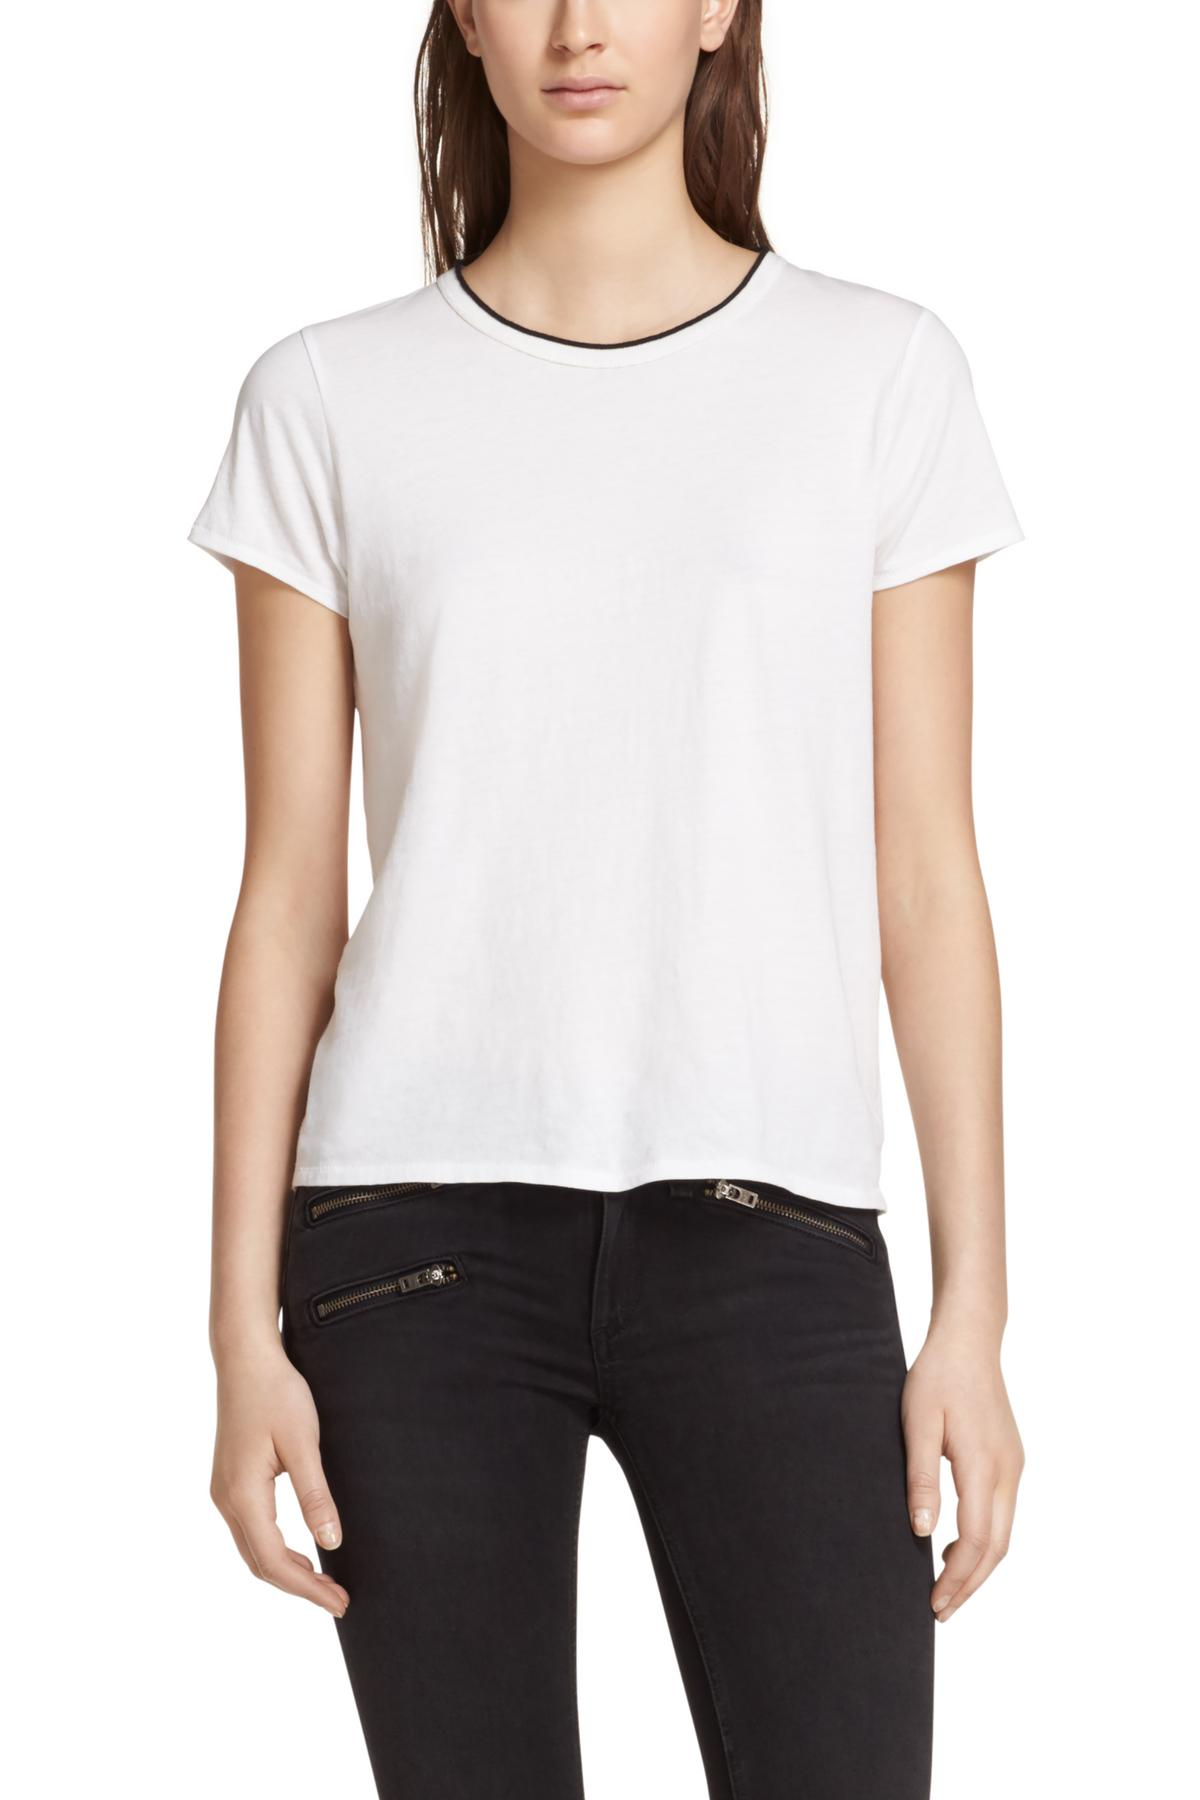 RAG & BONE RIB BASE TEE